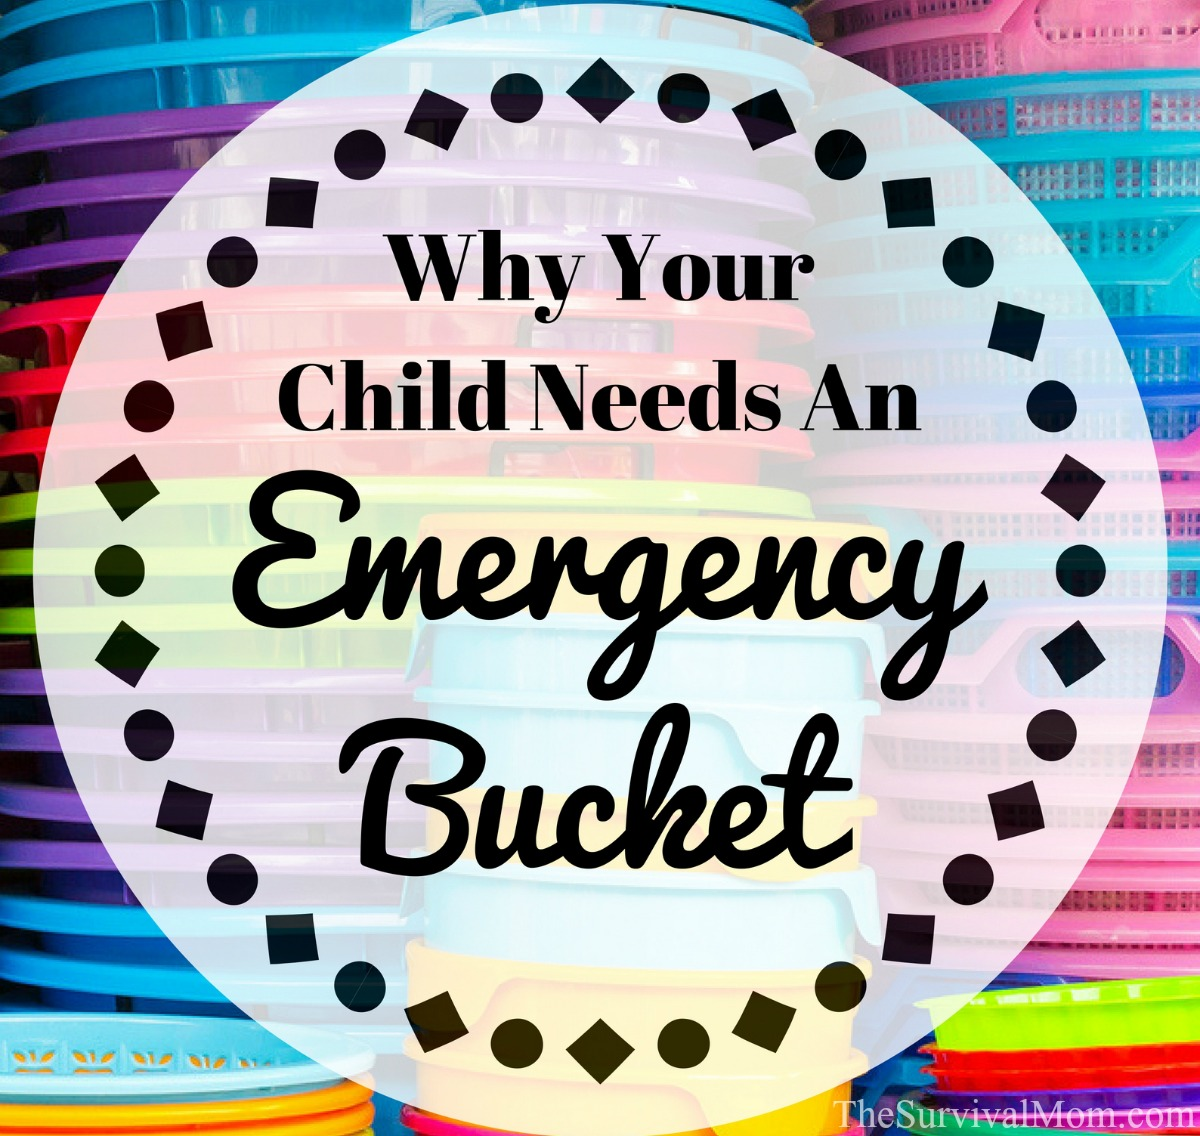 Why Your Child Needs An Emergency Bucket via The Survival Mom